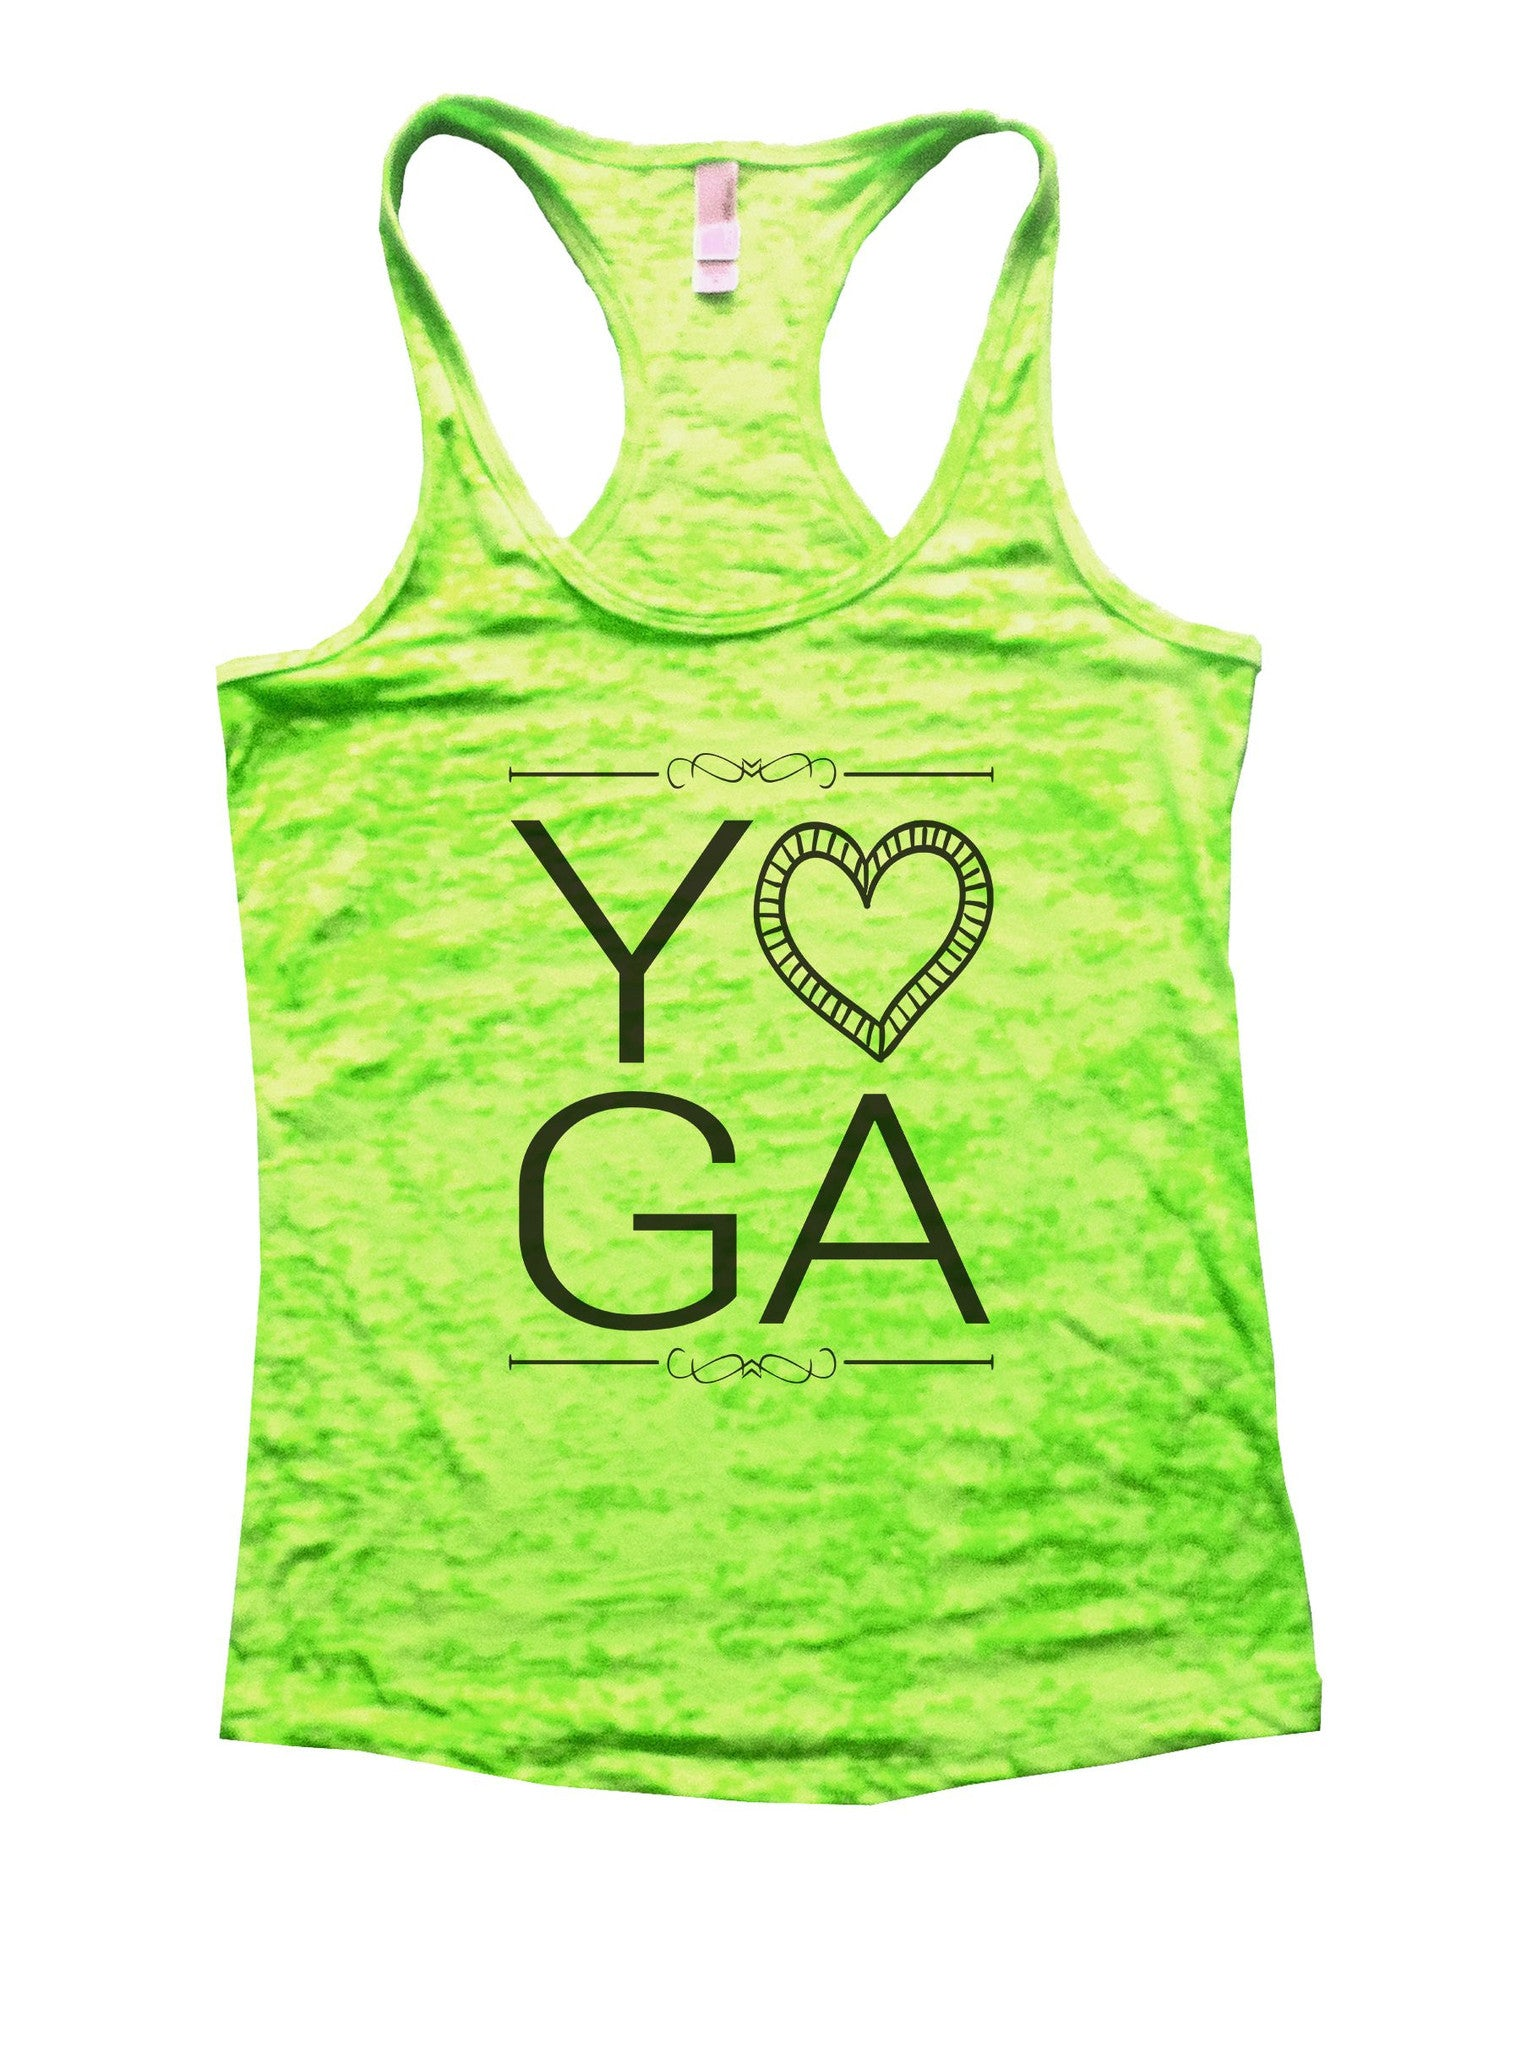 Yoga Burnout Tank Top By BurnoutTankTops.com - 838 - Funny Shirts Tank Tops Burnouts and Triblends  - 2